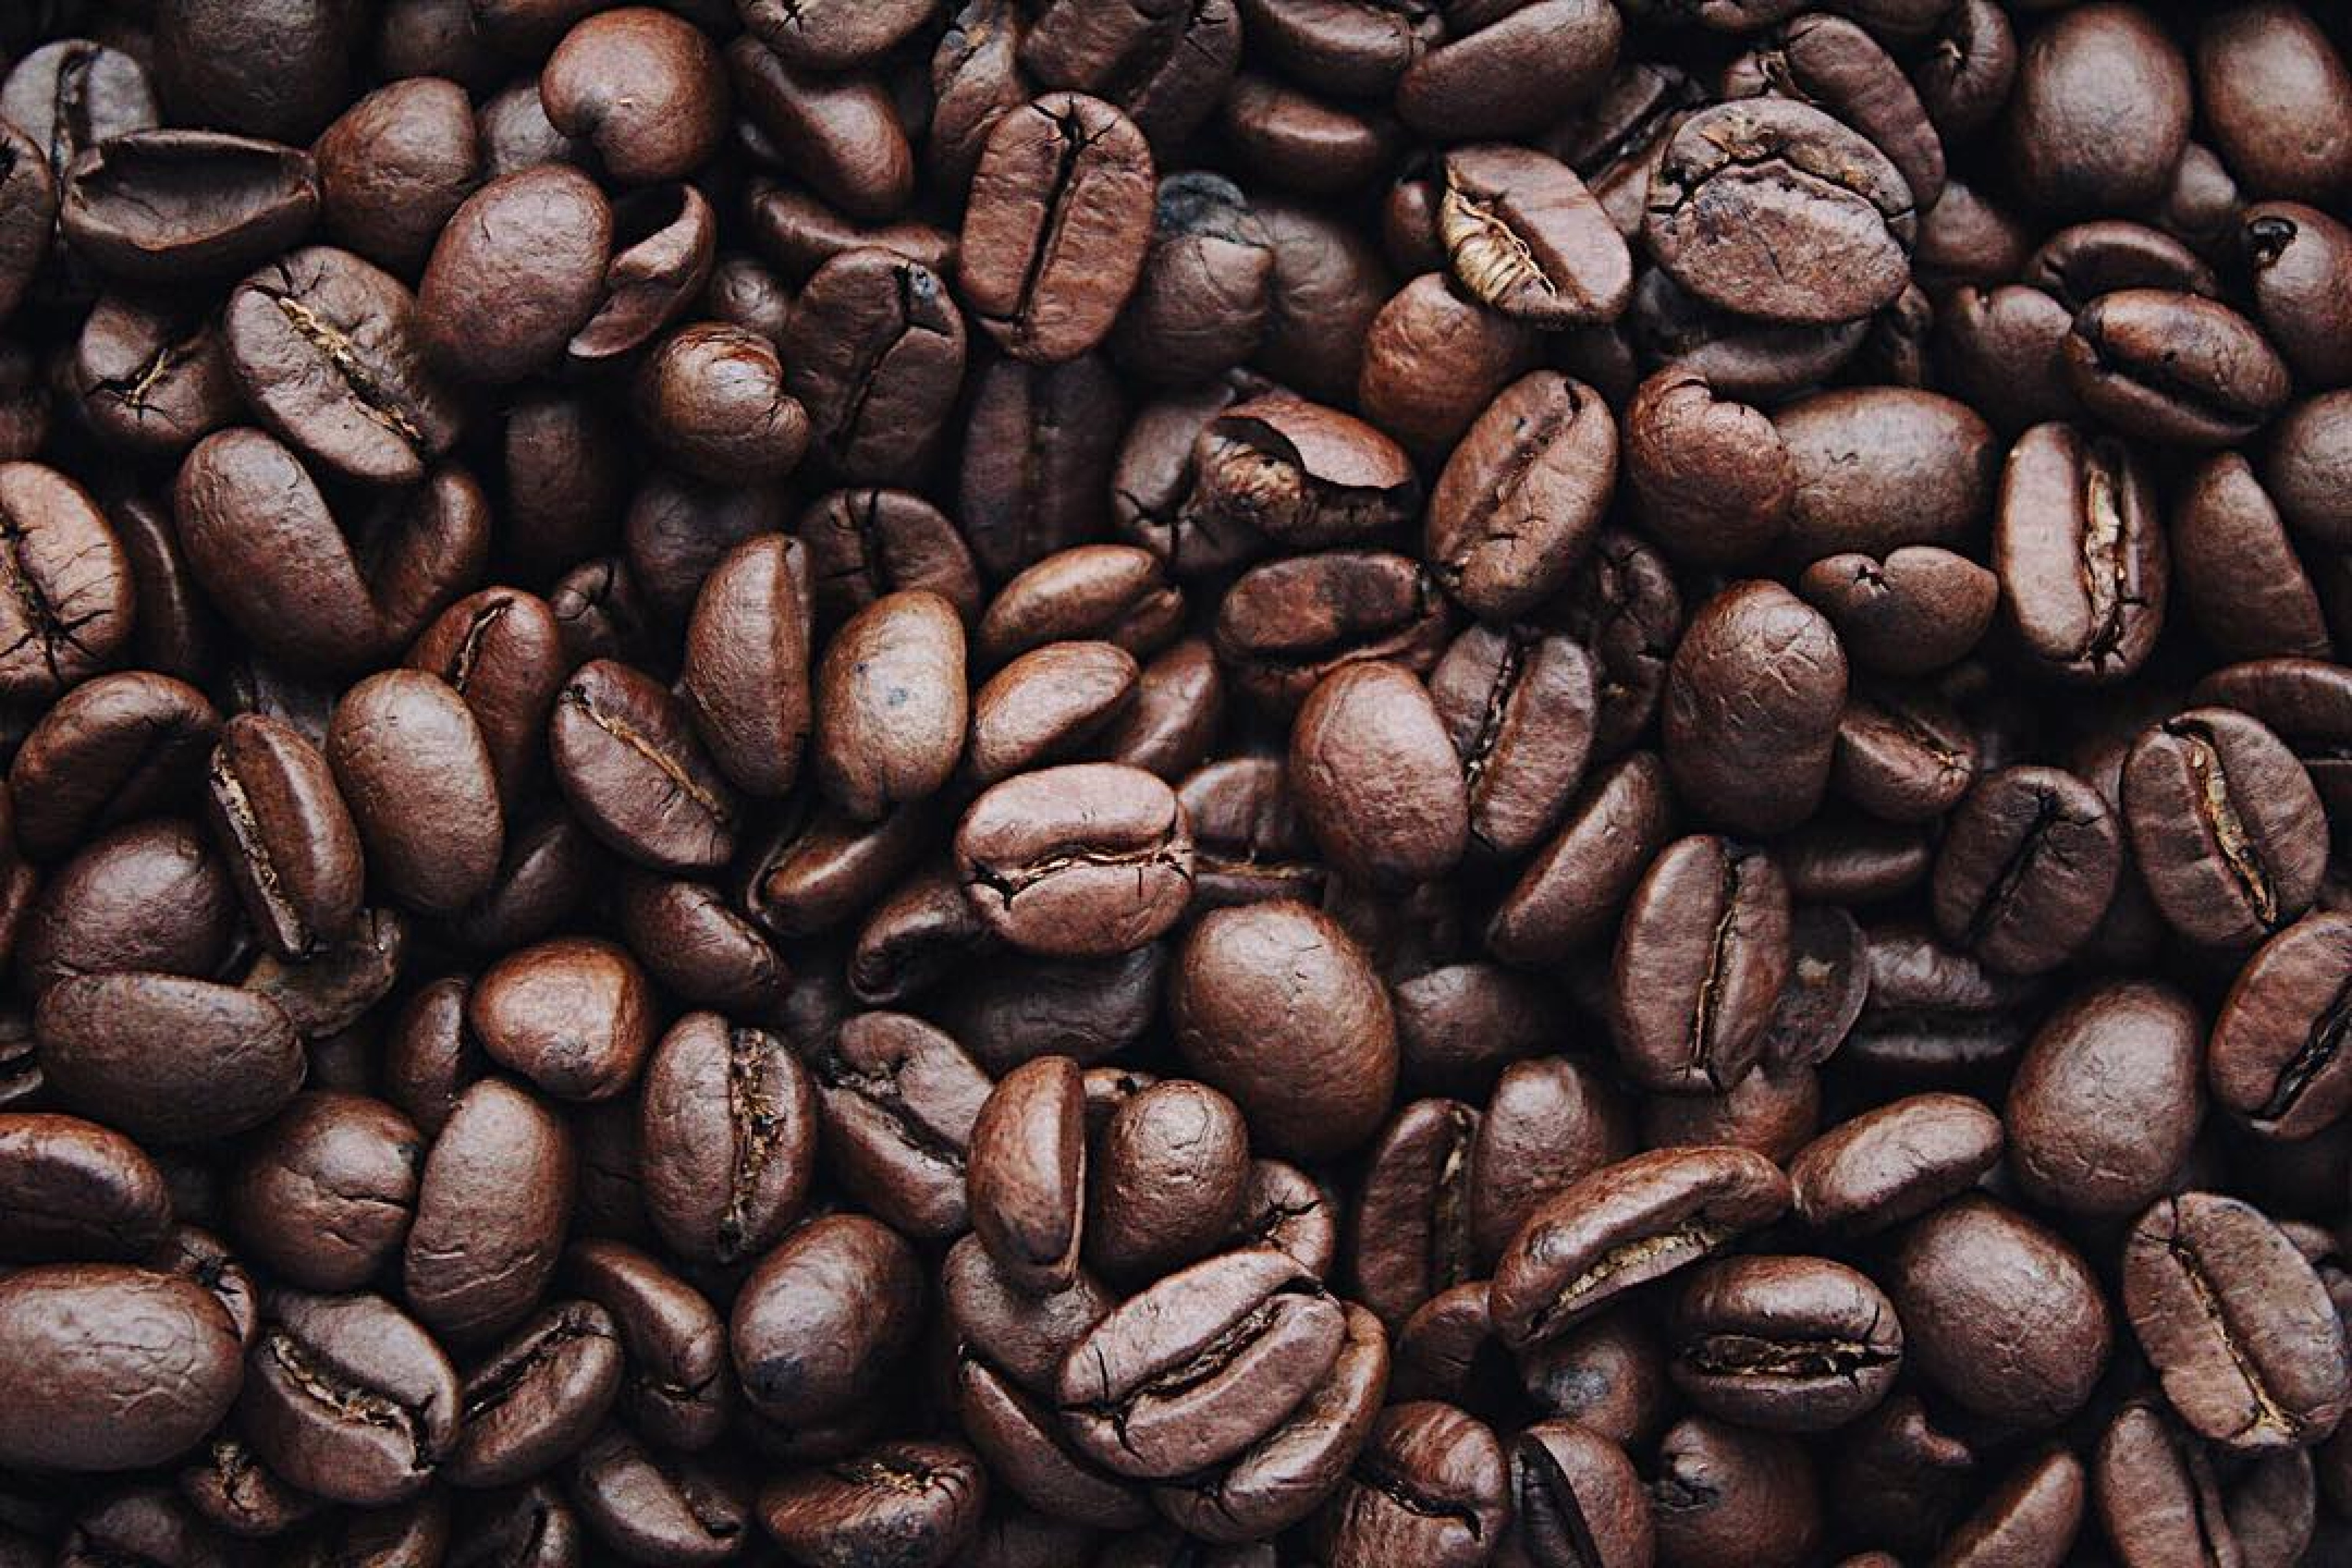 An in-depth review of the best decaf coffee beans available in 2019.